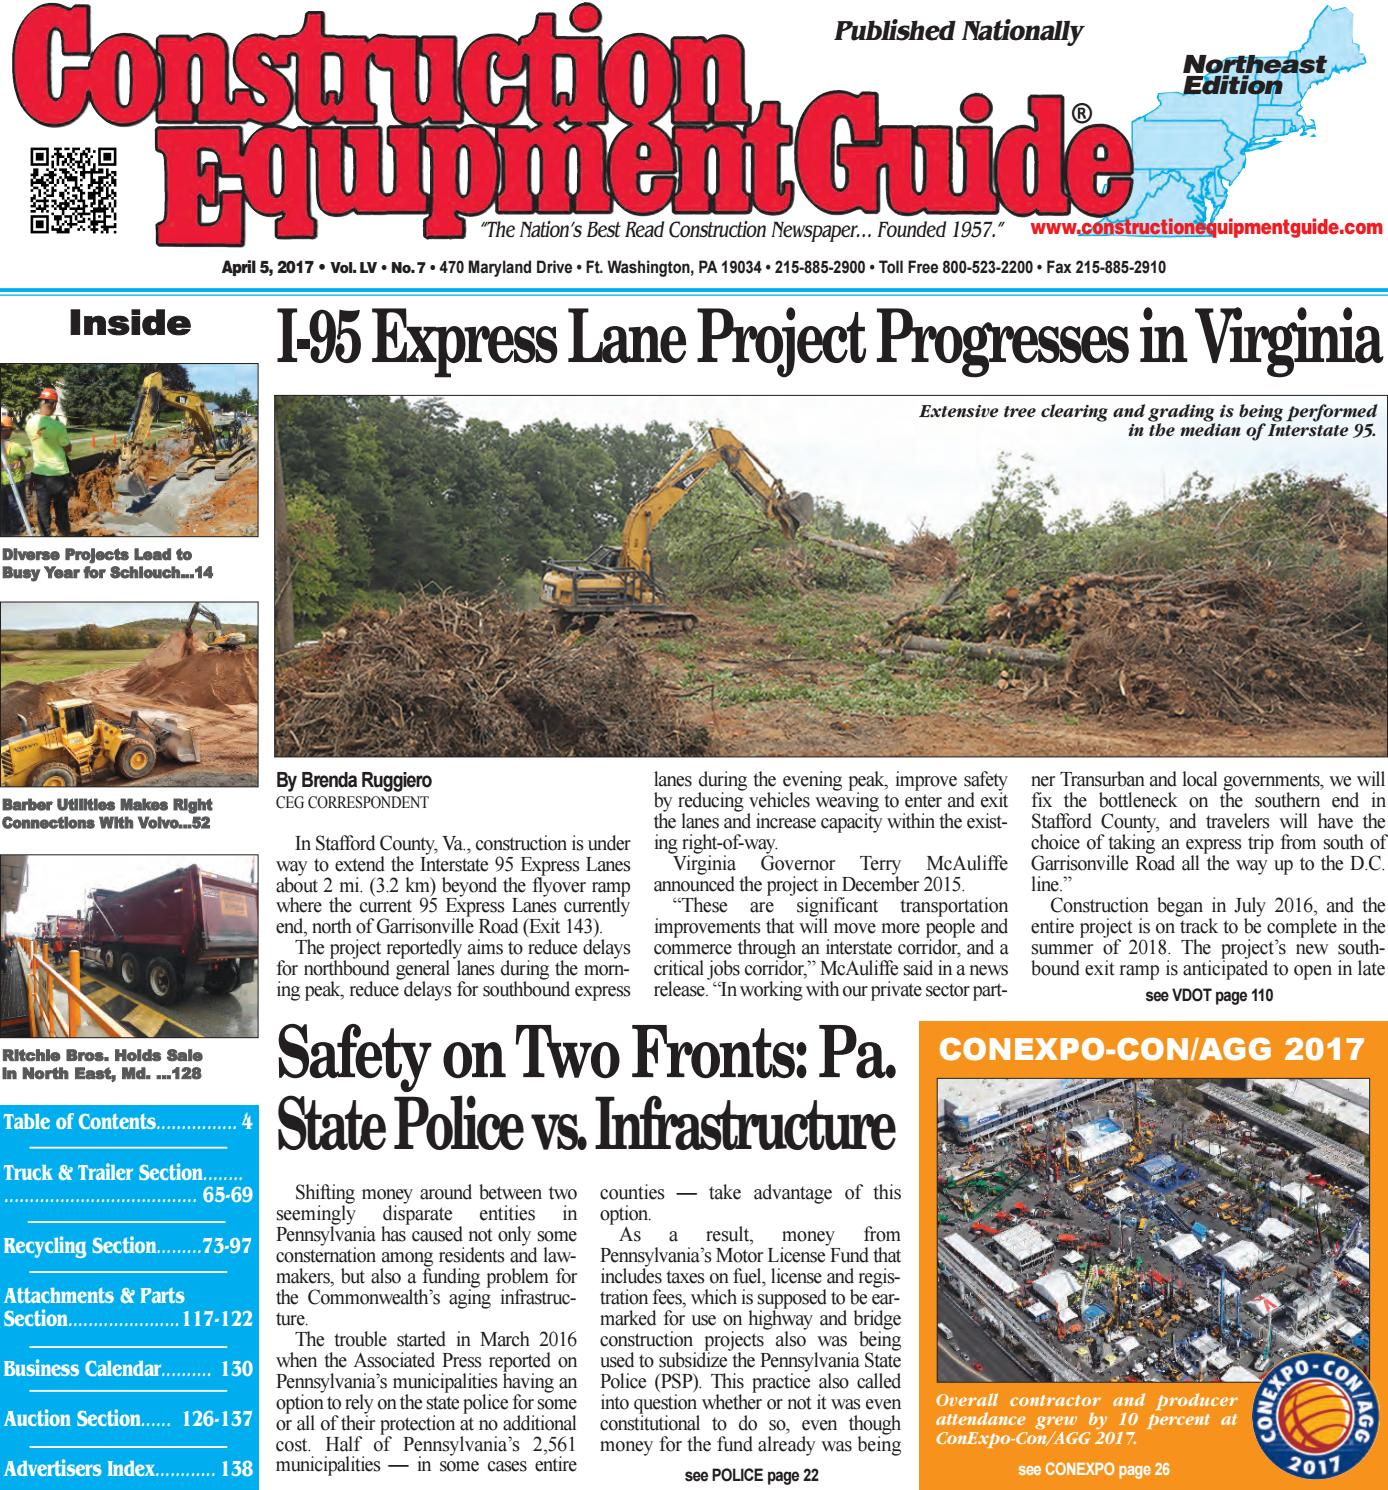 Northeast 7 April 5, 2017 by Construction Equipment Guide